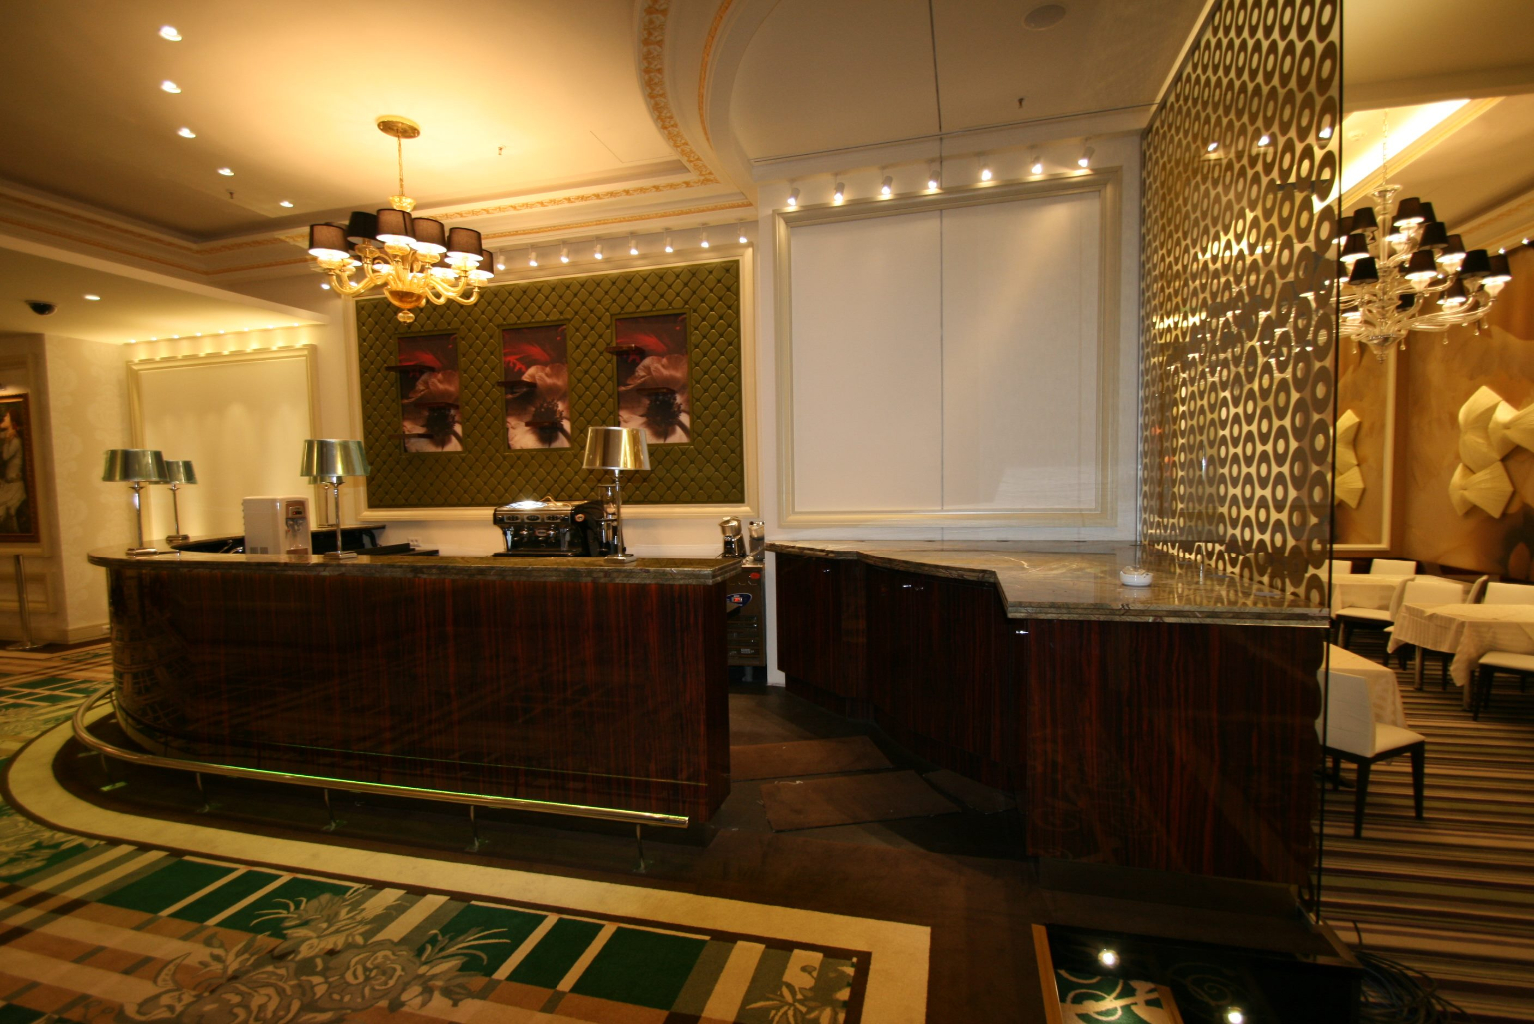 Grand Casino Marriott Bucuresti Bucharest placari pereti rame receptii usi bar bufet167